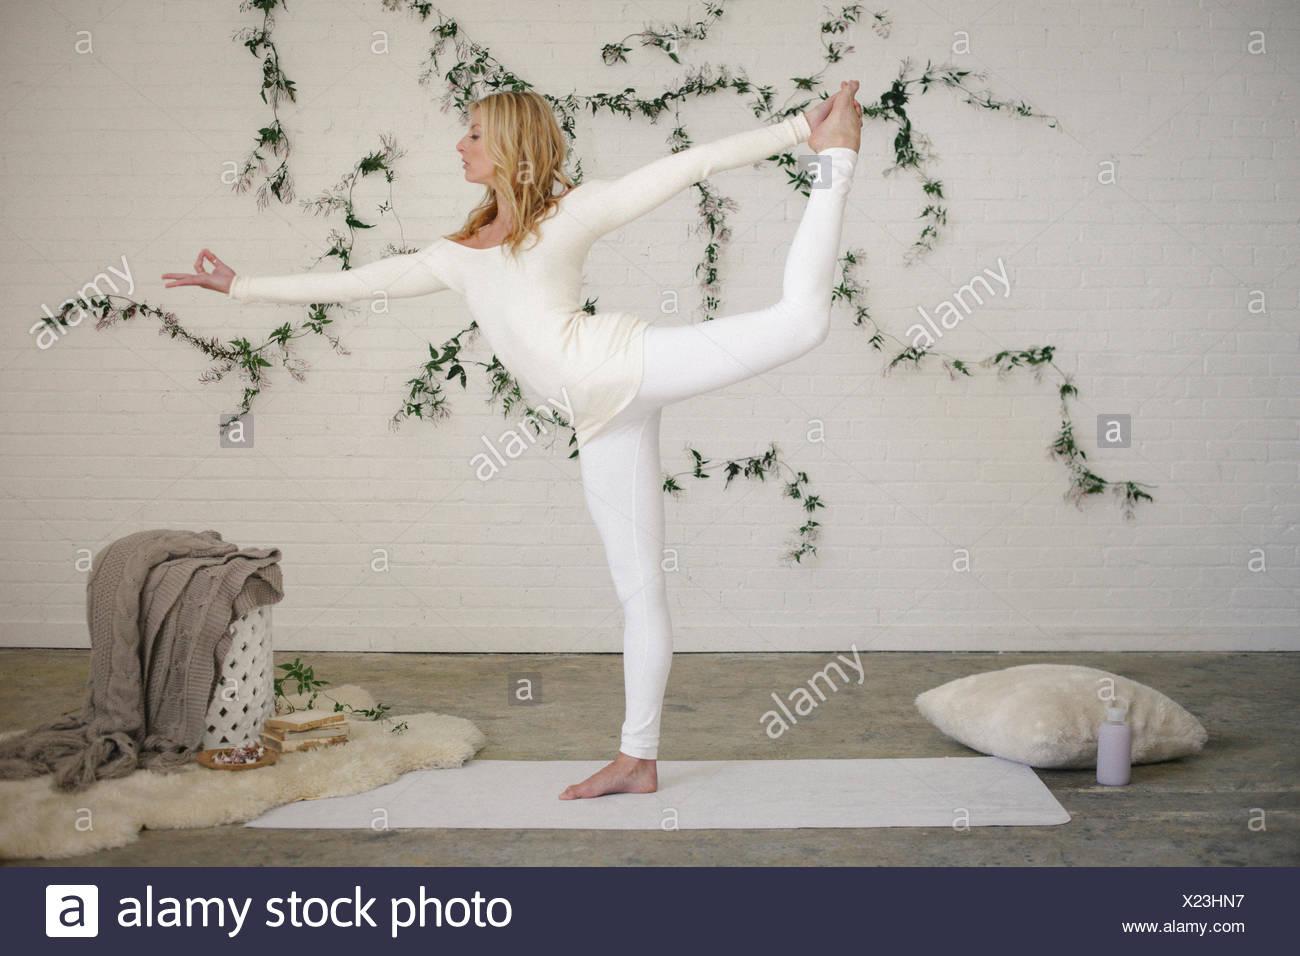 A blonde woman in a white leotard and leggings, standing on a white mat in a room, standing on one leg and arms outstretched. - Stock Image